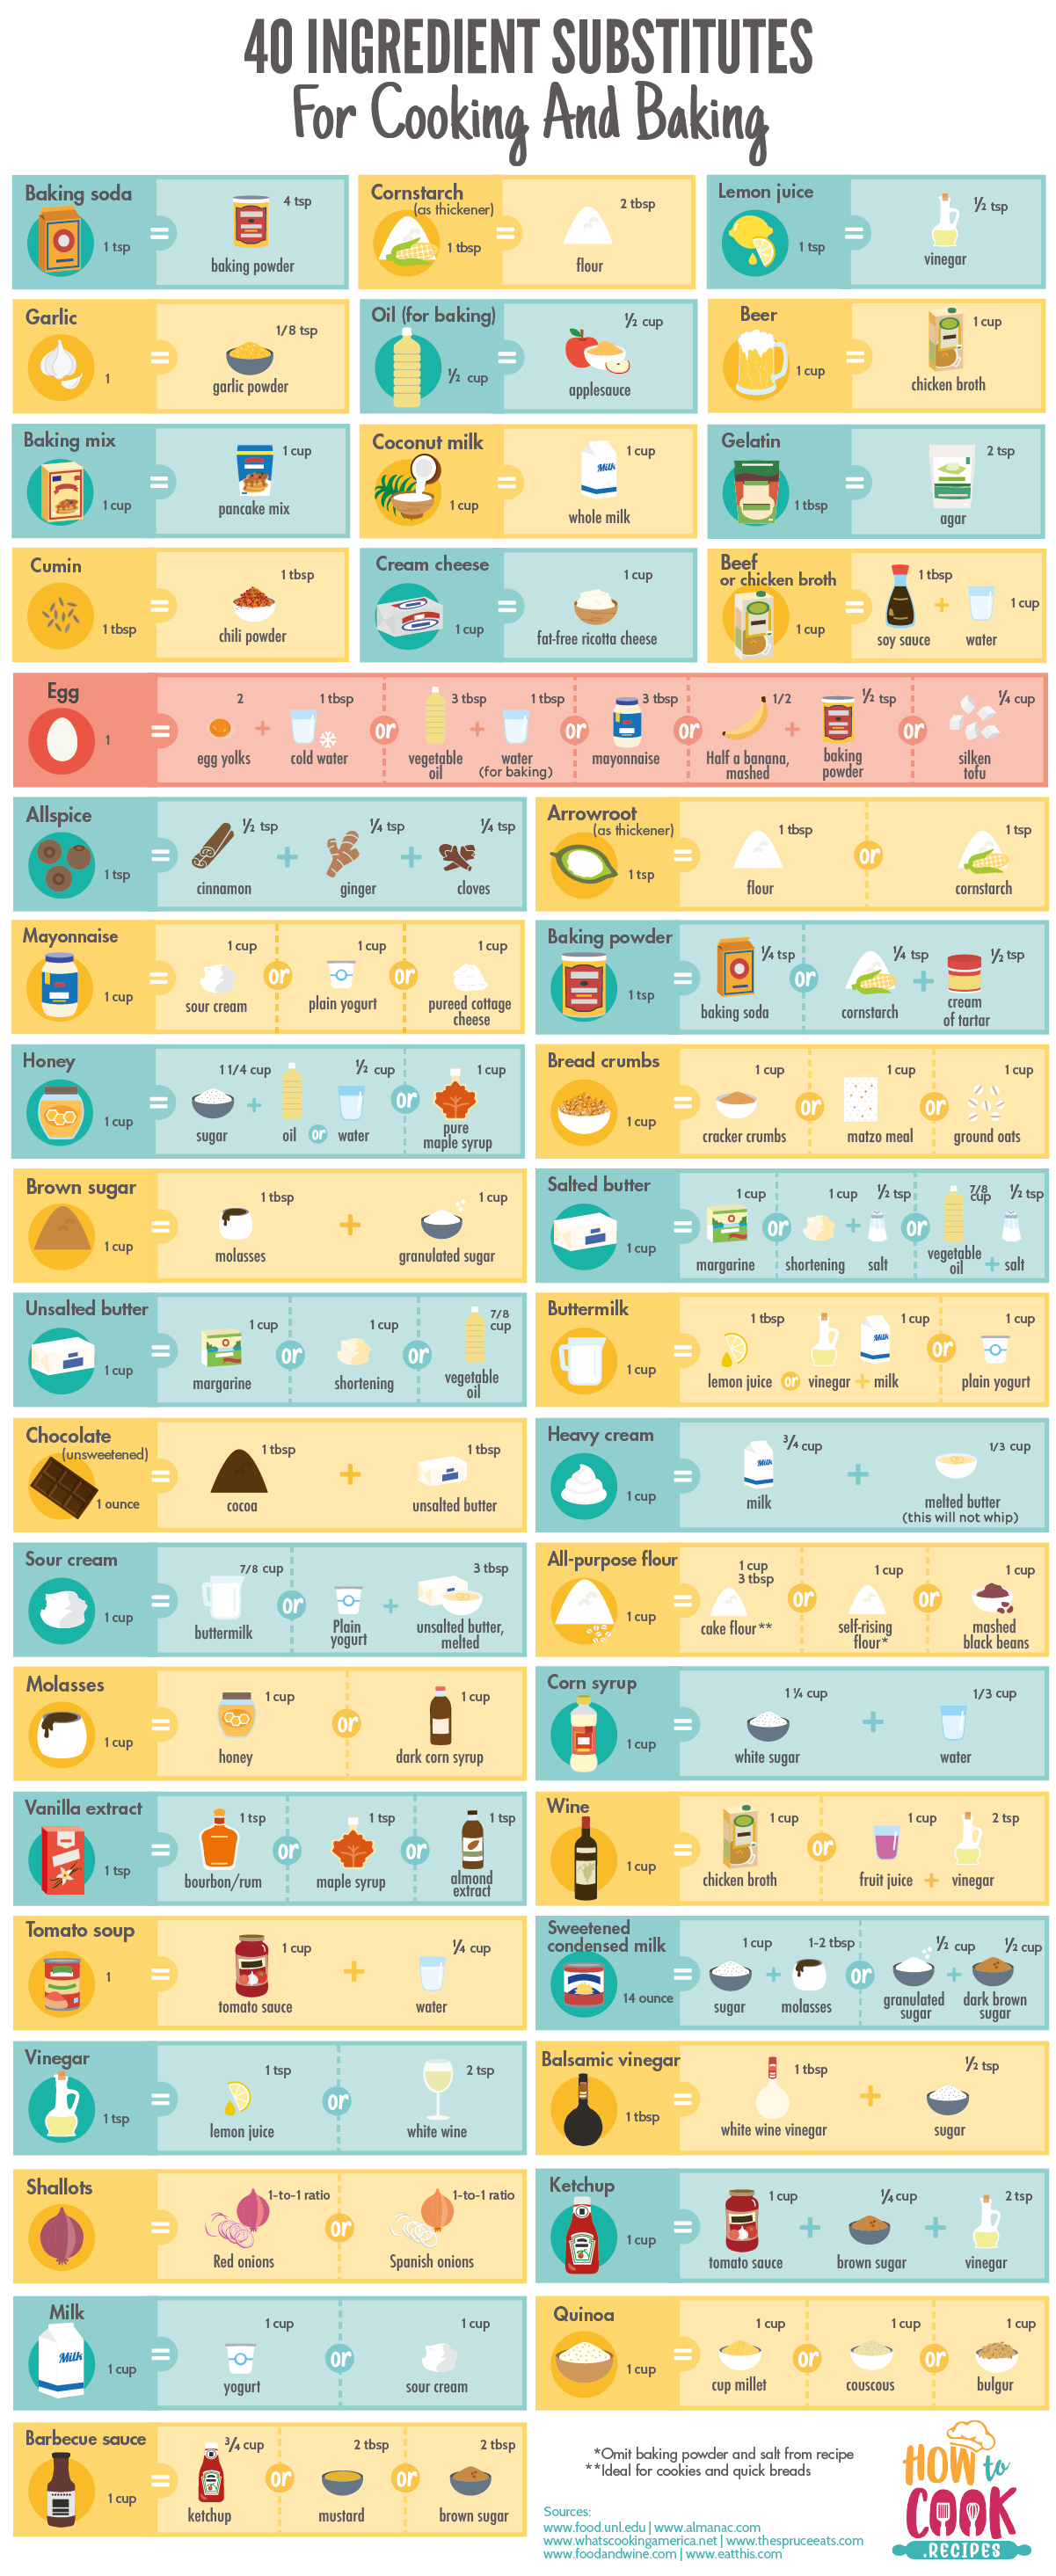 40 Ingredient Substitutes For Cooking And Baking